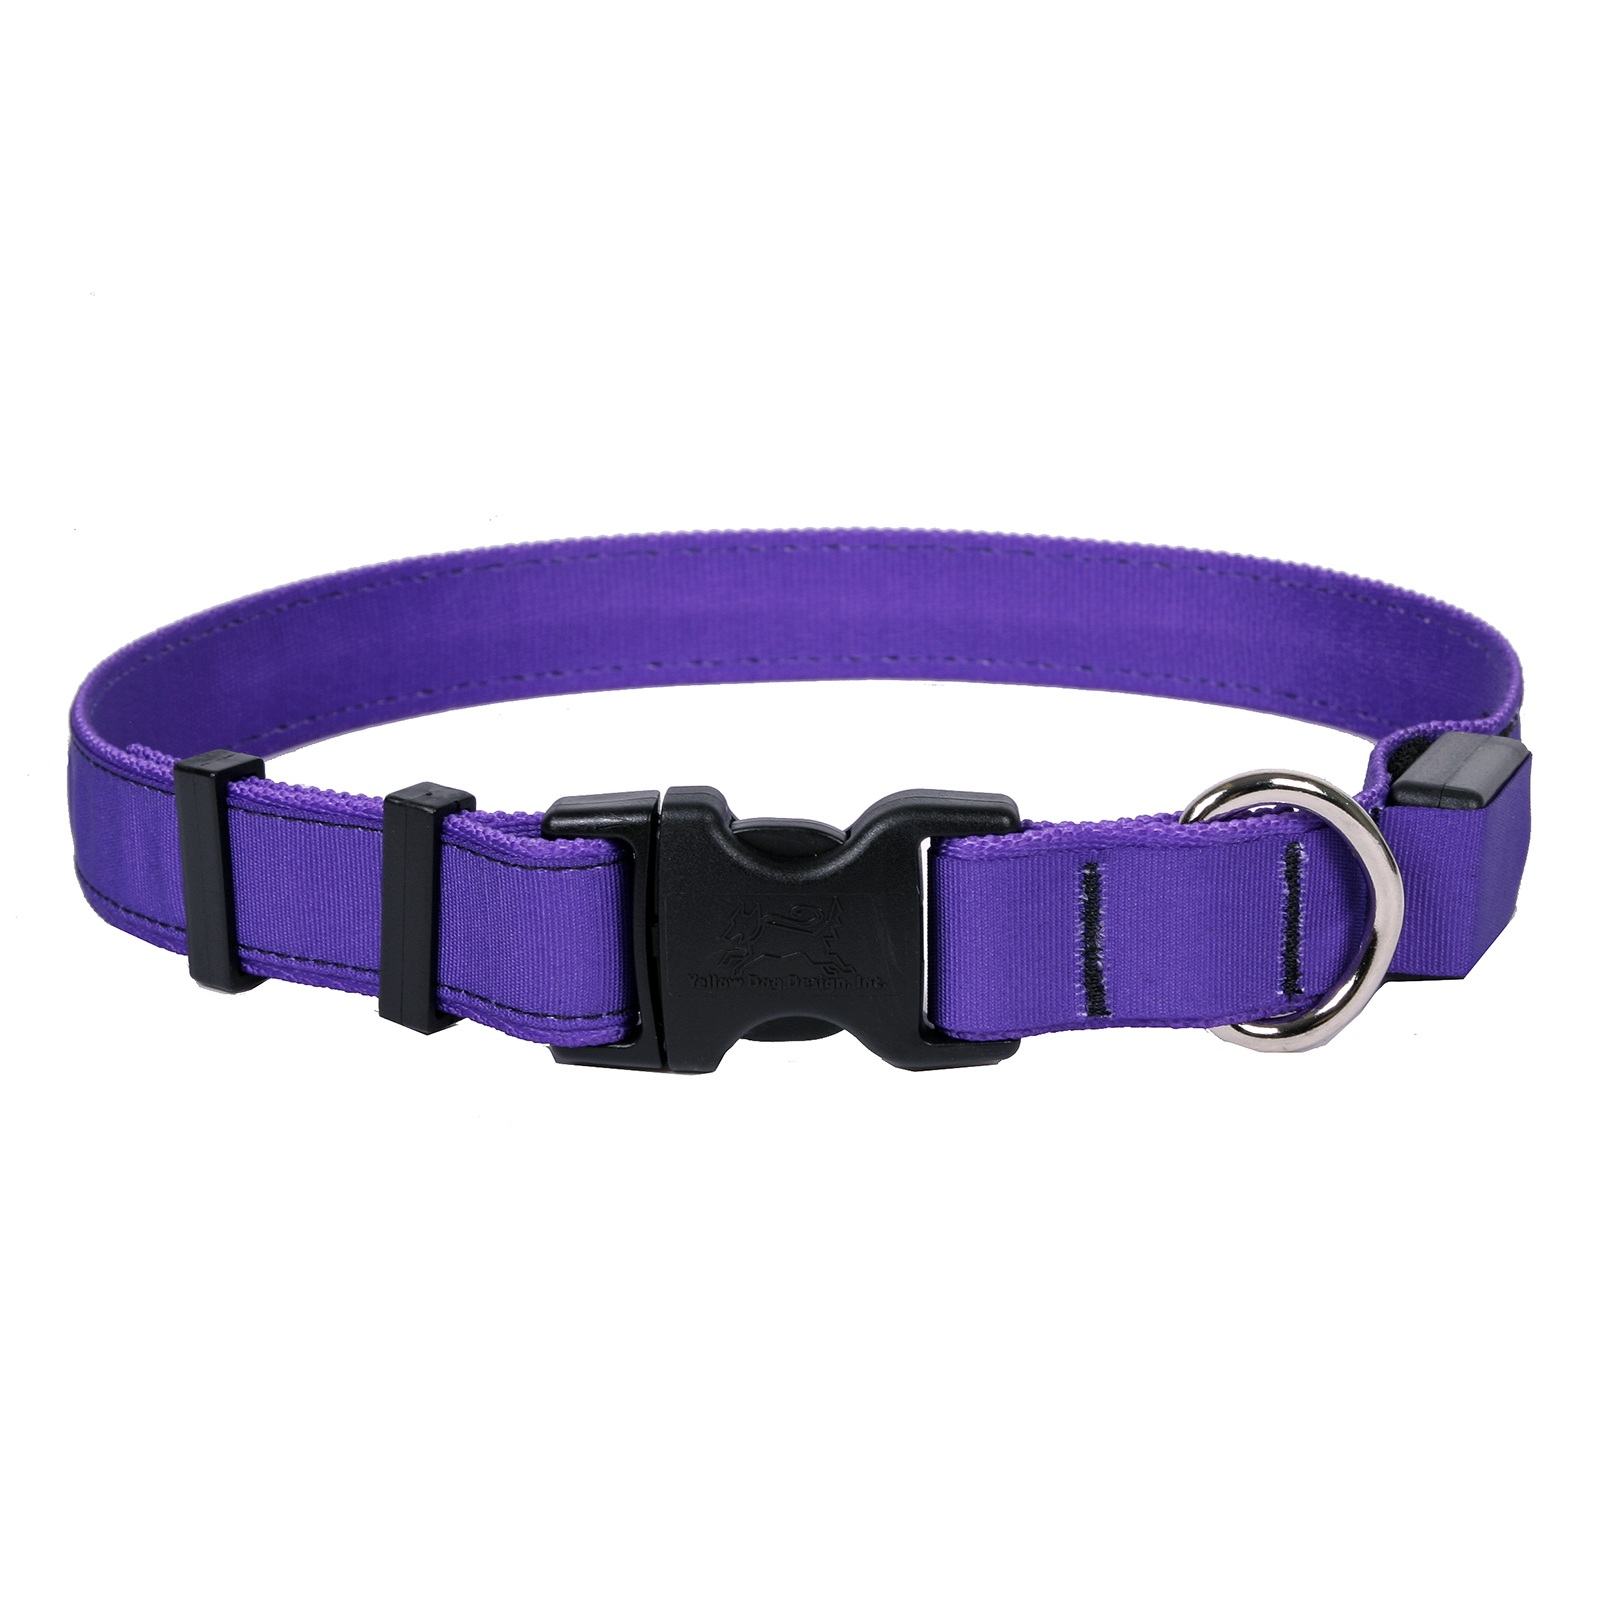 Solid Purple ORION LED Dog Collar